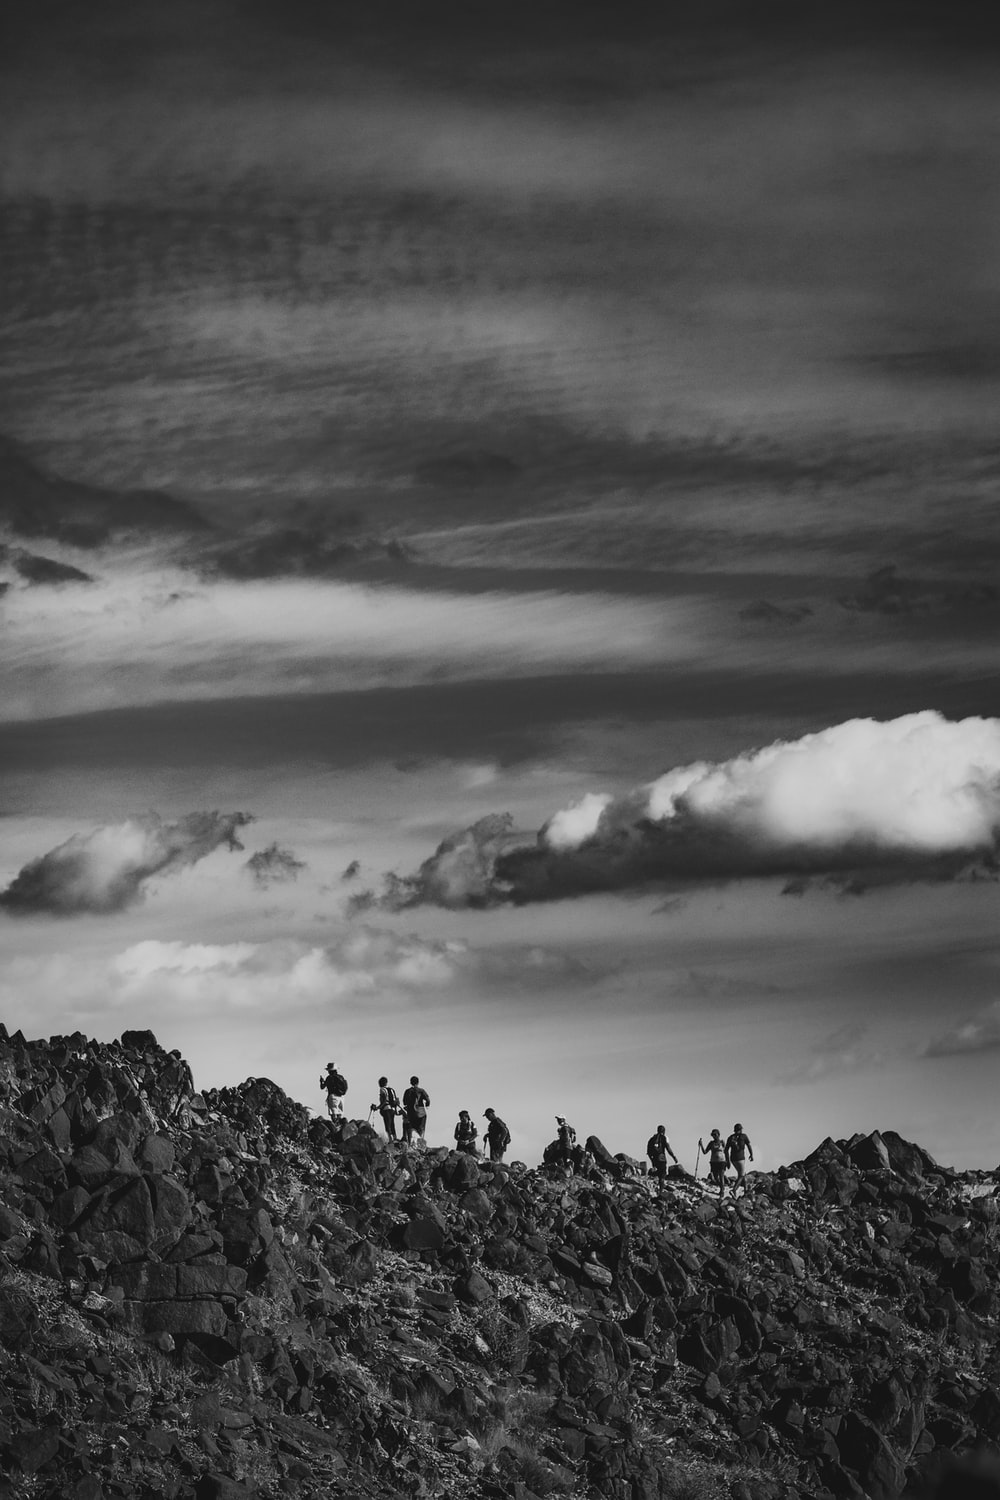 grayscale photo of people on rocky mountain under cloudy sky